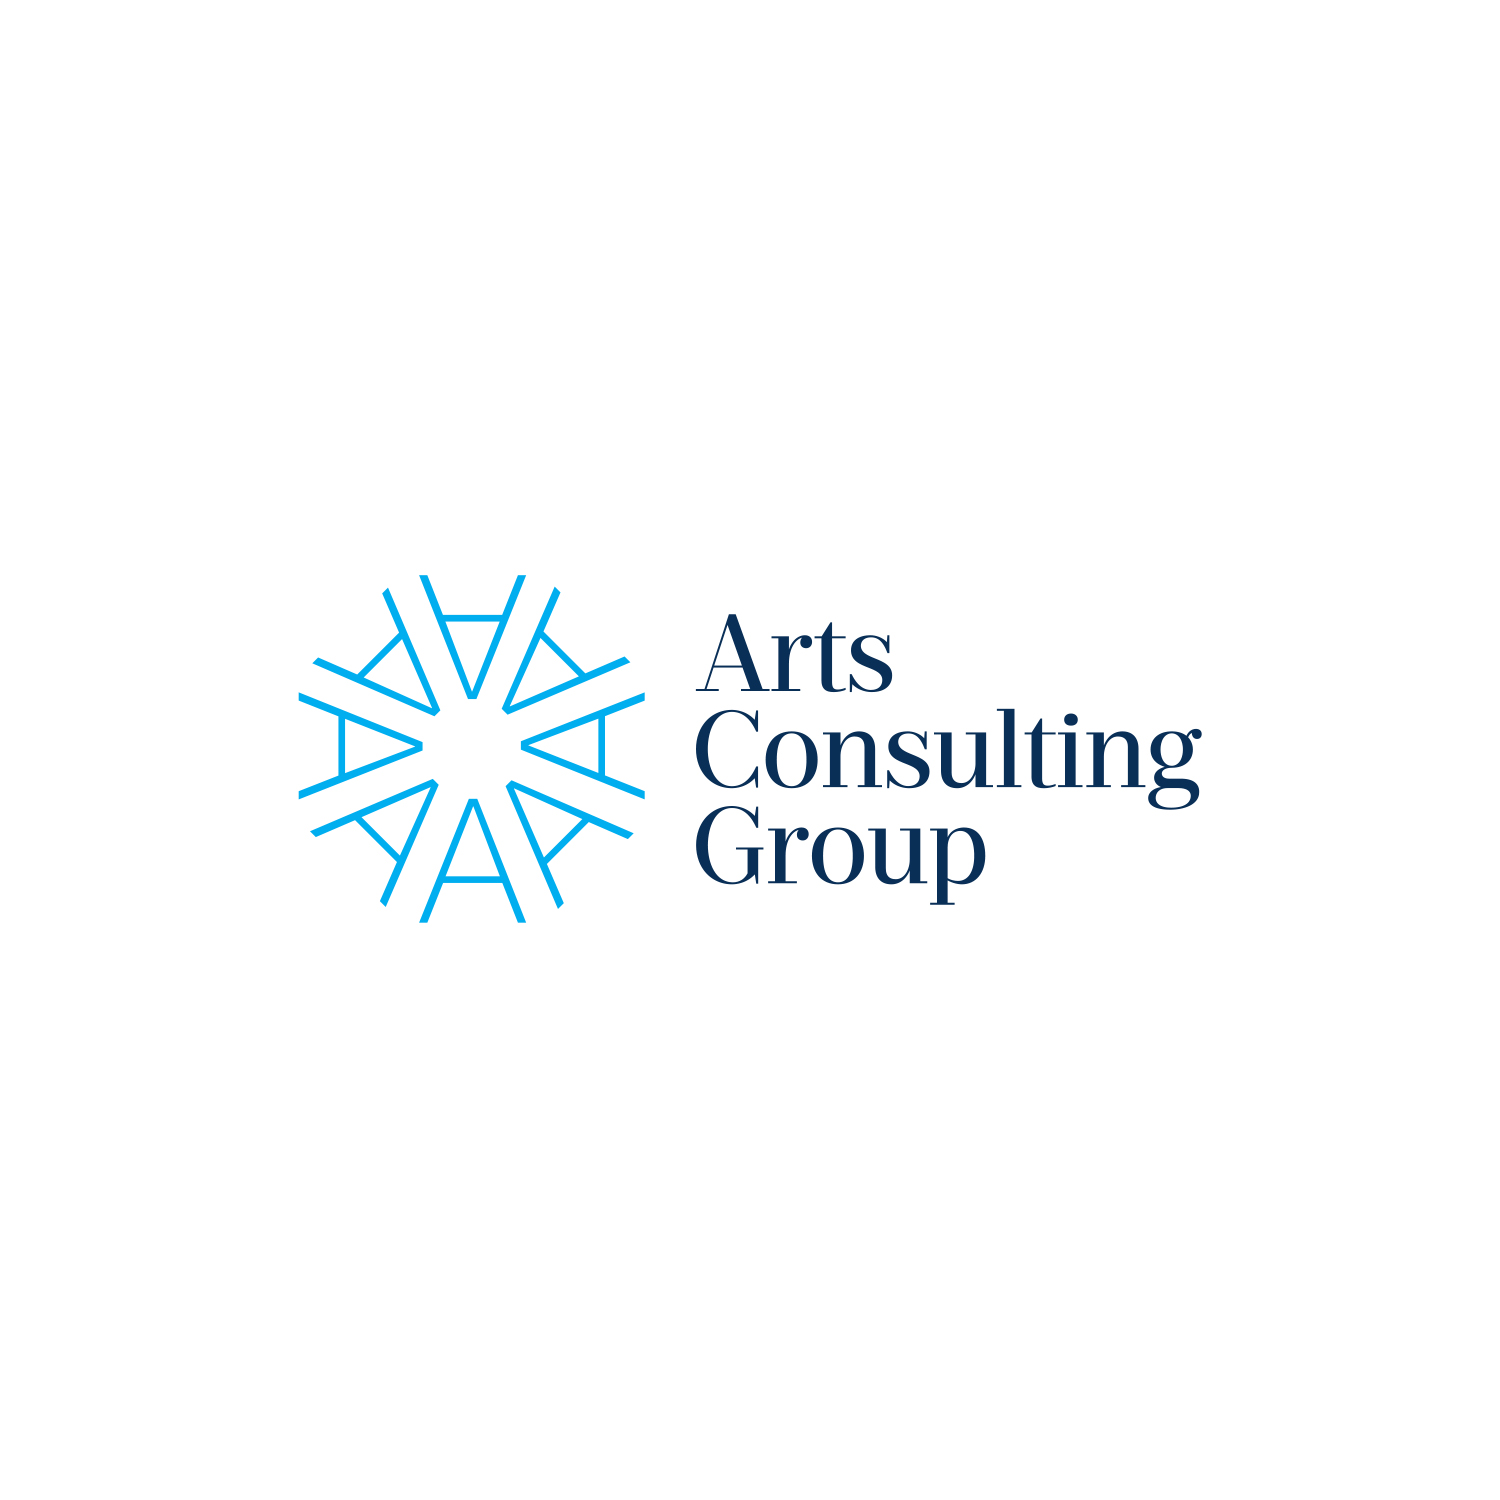 Arts Consulting Group (1).jpg